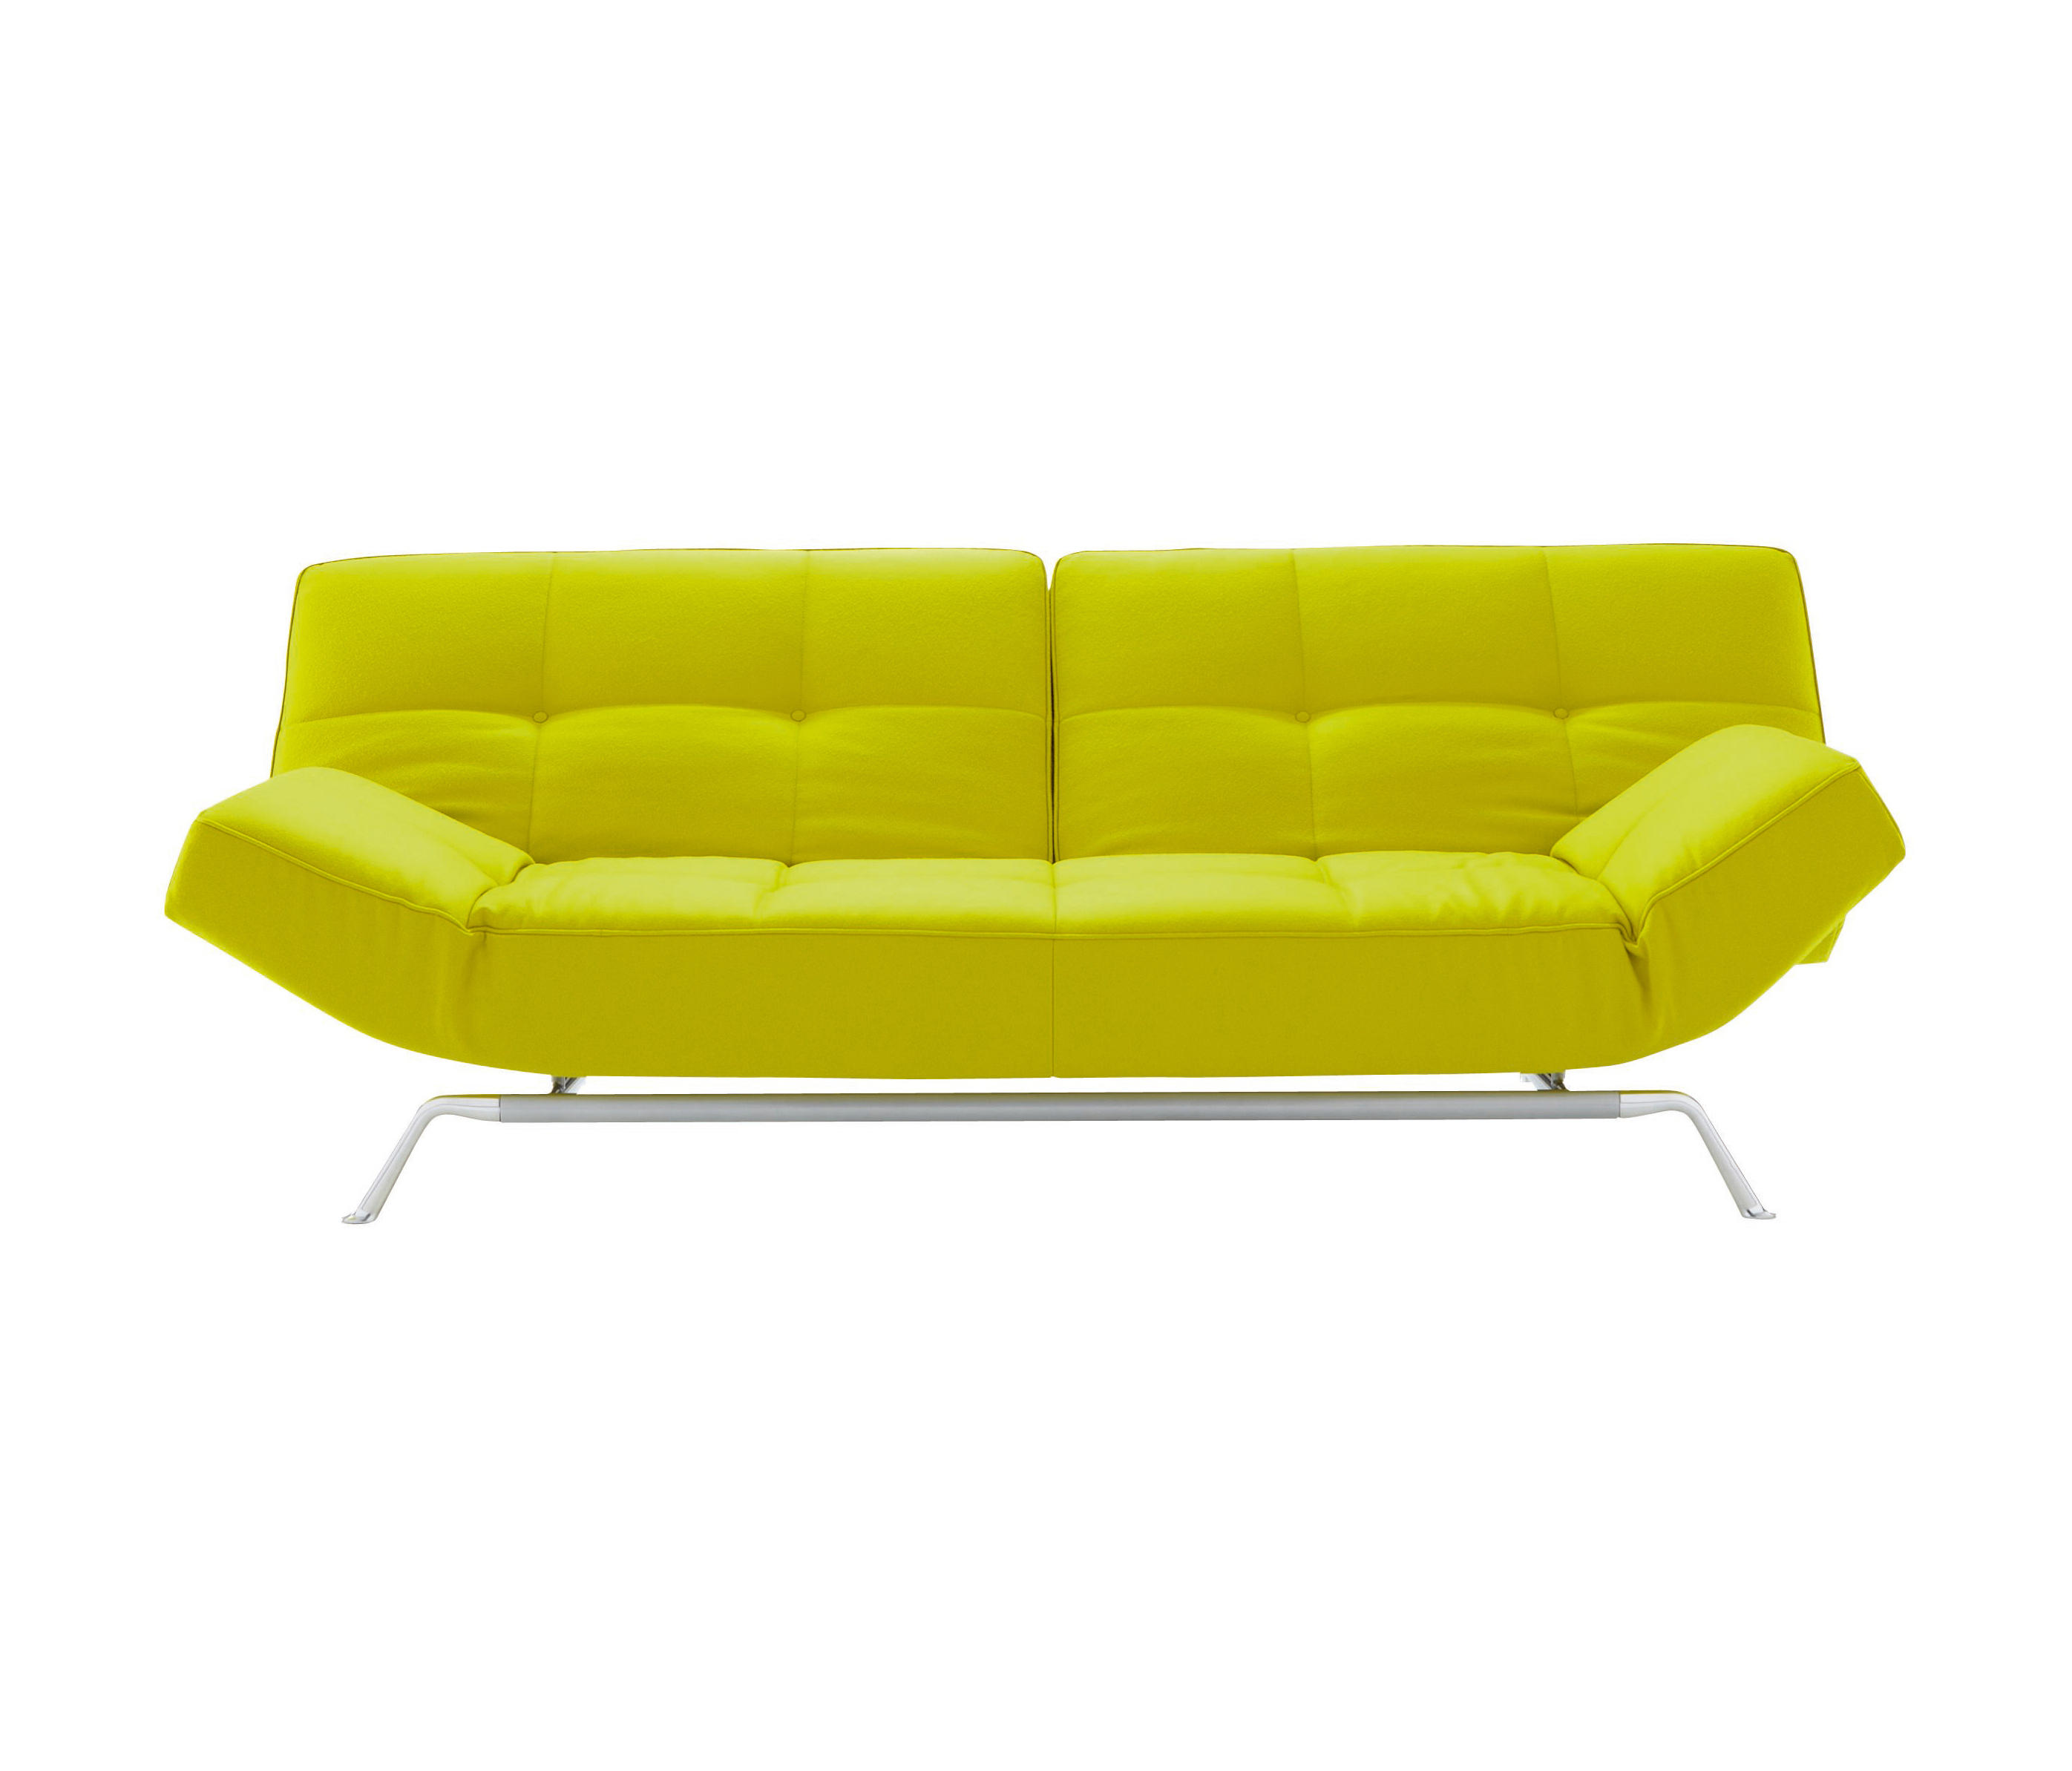 Ligne Roset Sofa Smala Settee Complete Item Sofas From Ligne Roset Architonic